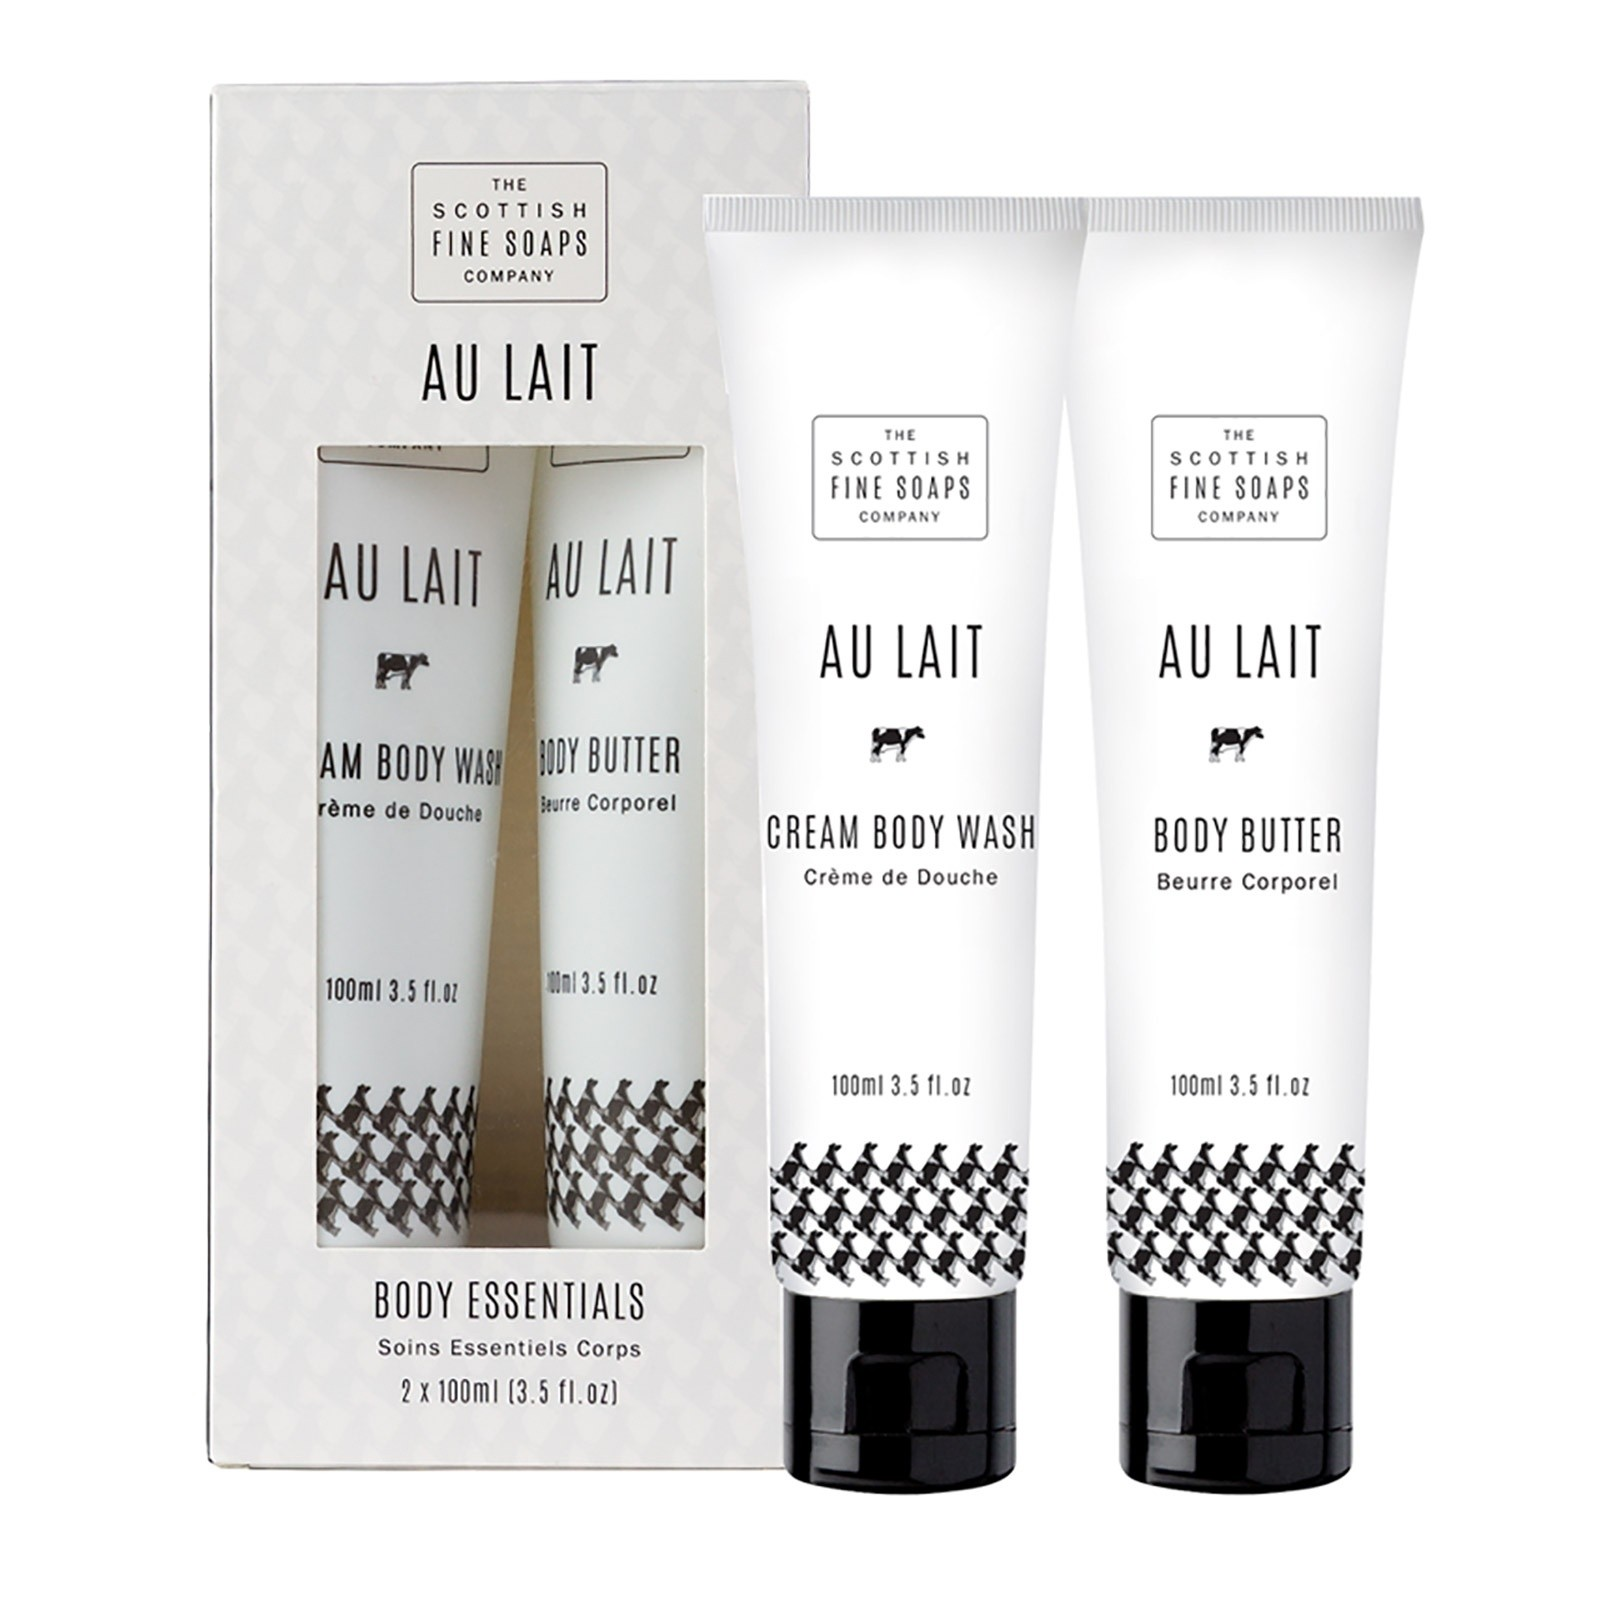 Au Lait Body Essentials Duo